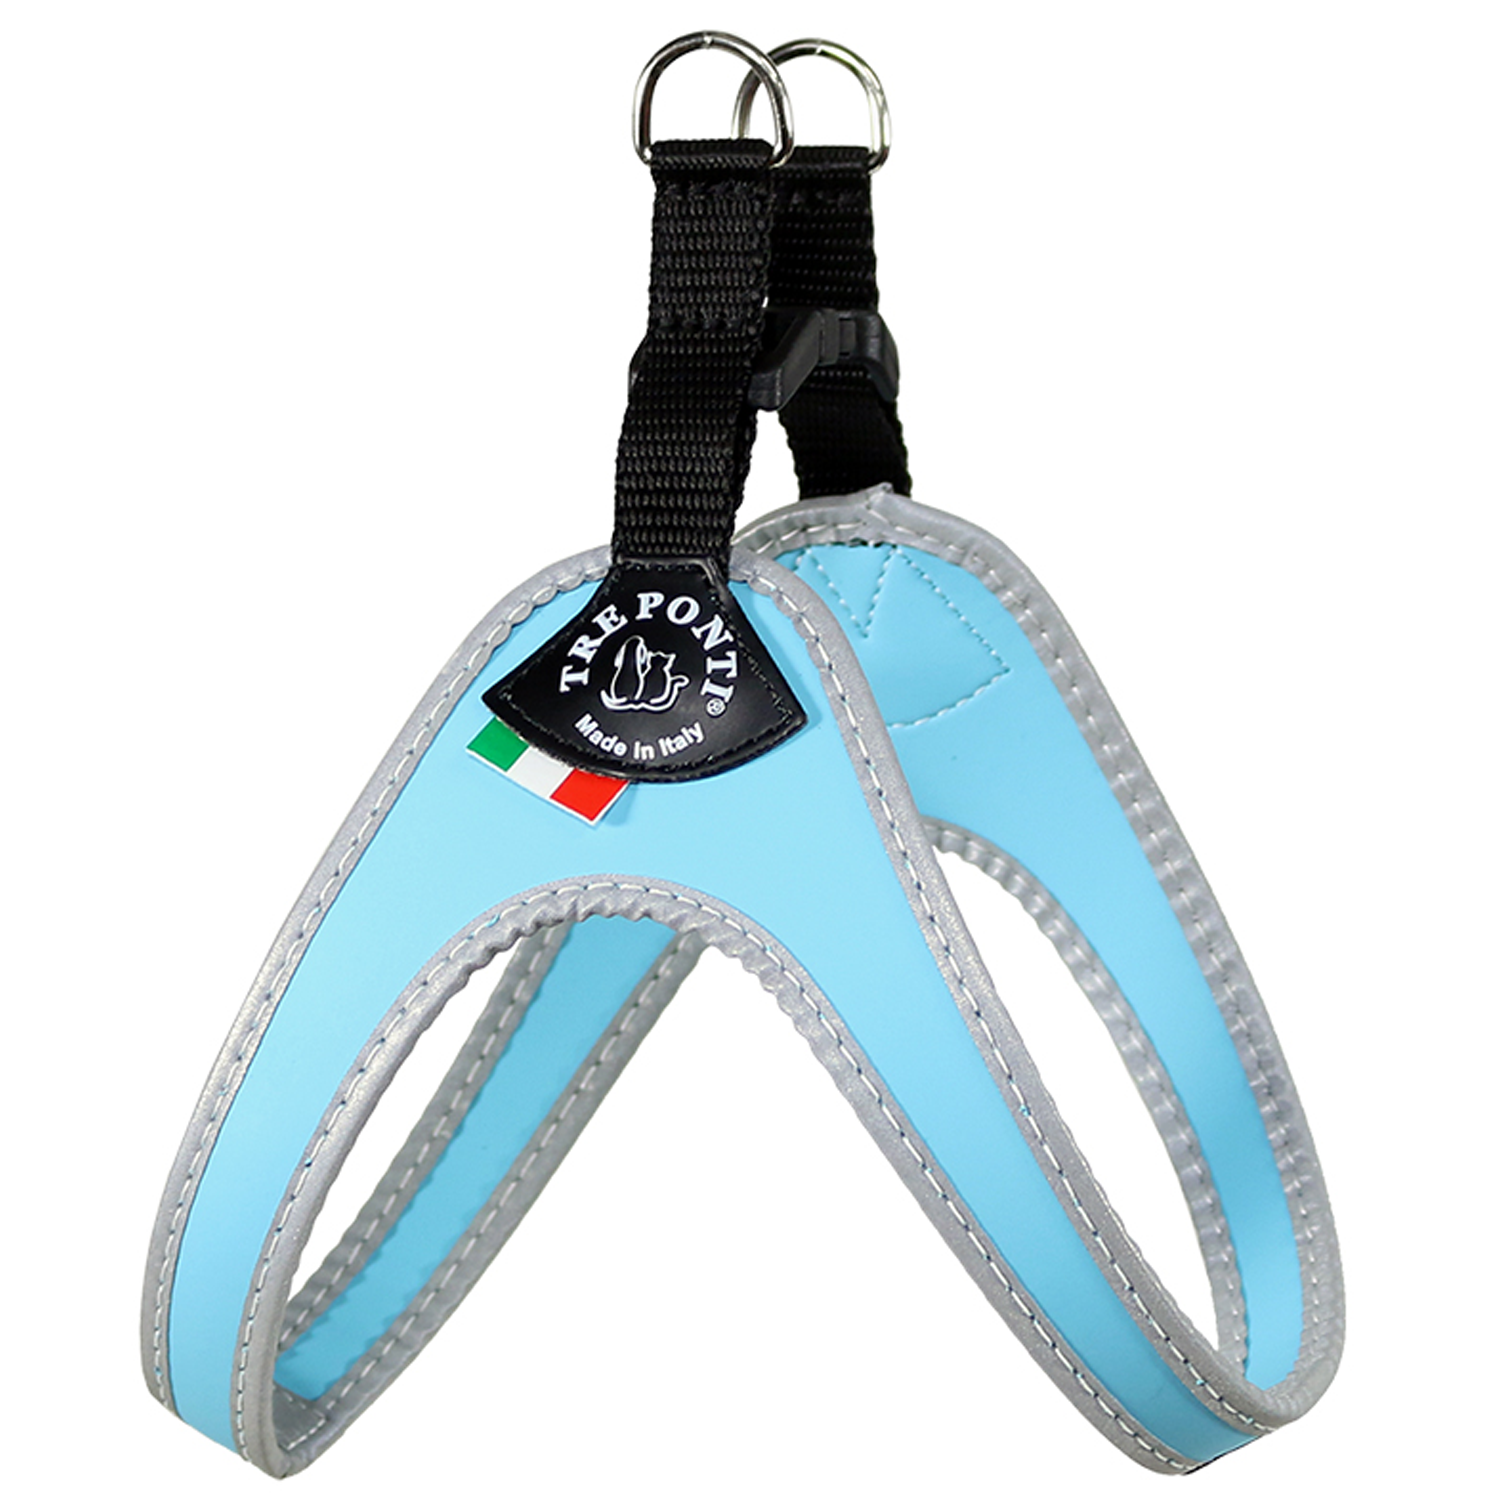 Blue Buckle Dog Harness